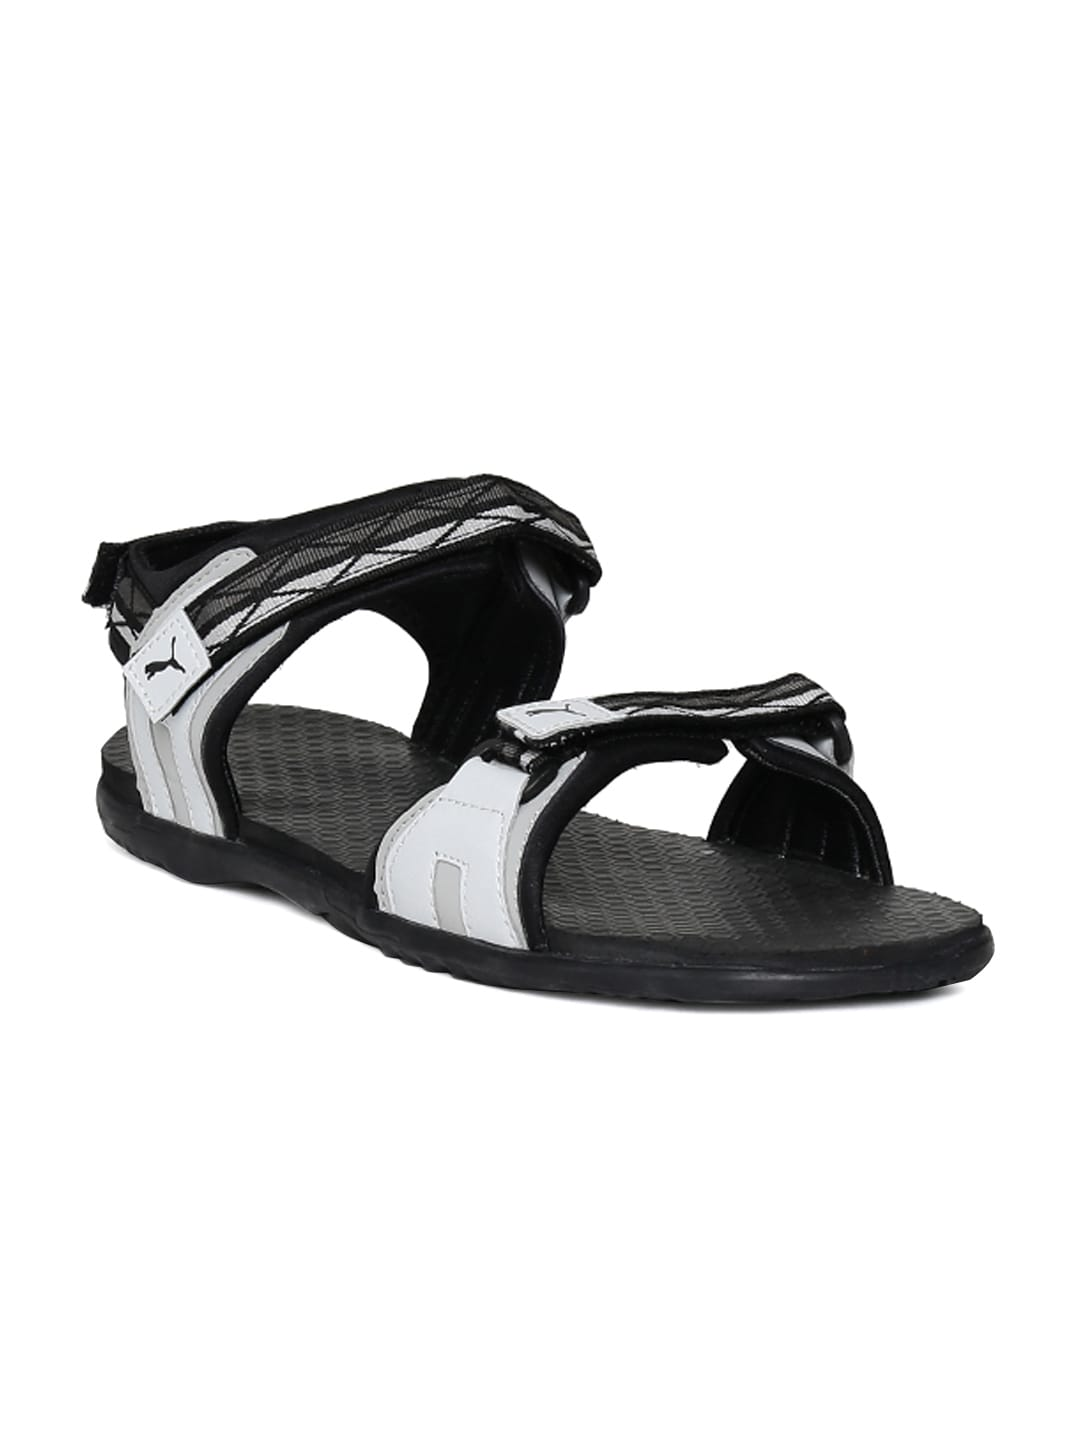 Puma Sandal 1000 To 1300 3 - Buy Puma Sandal 1000 To 1300 3 online in India b715ce282